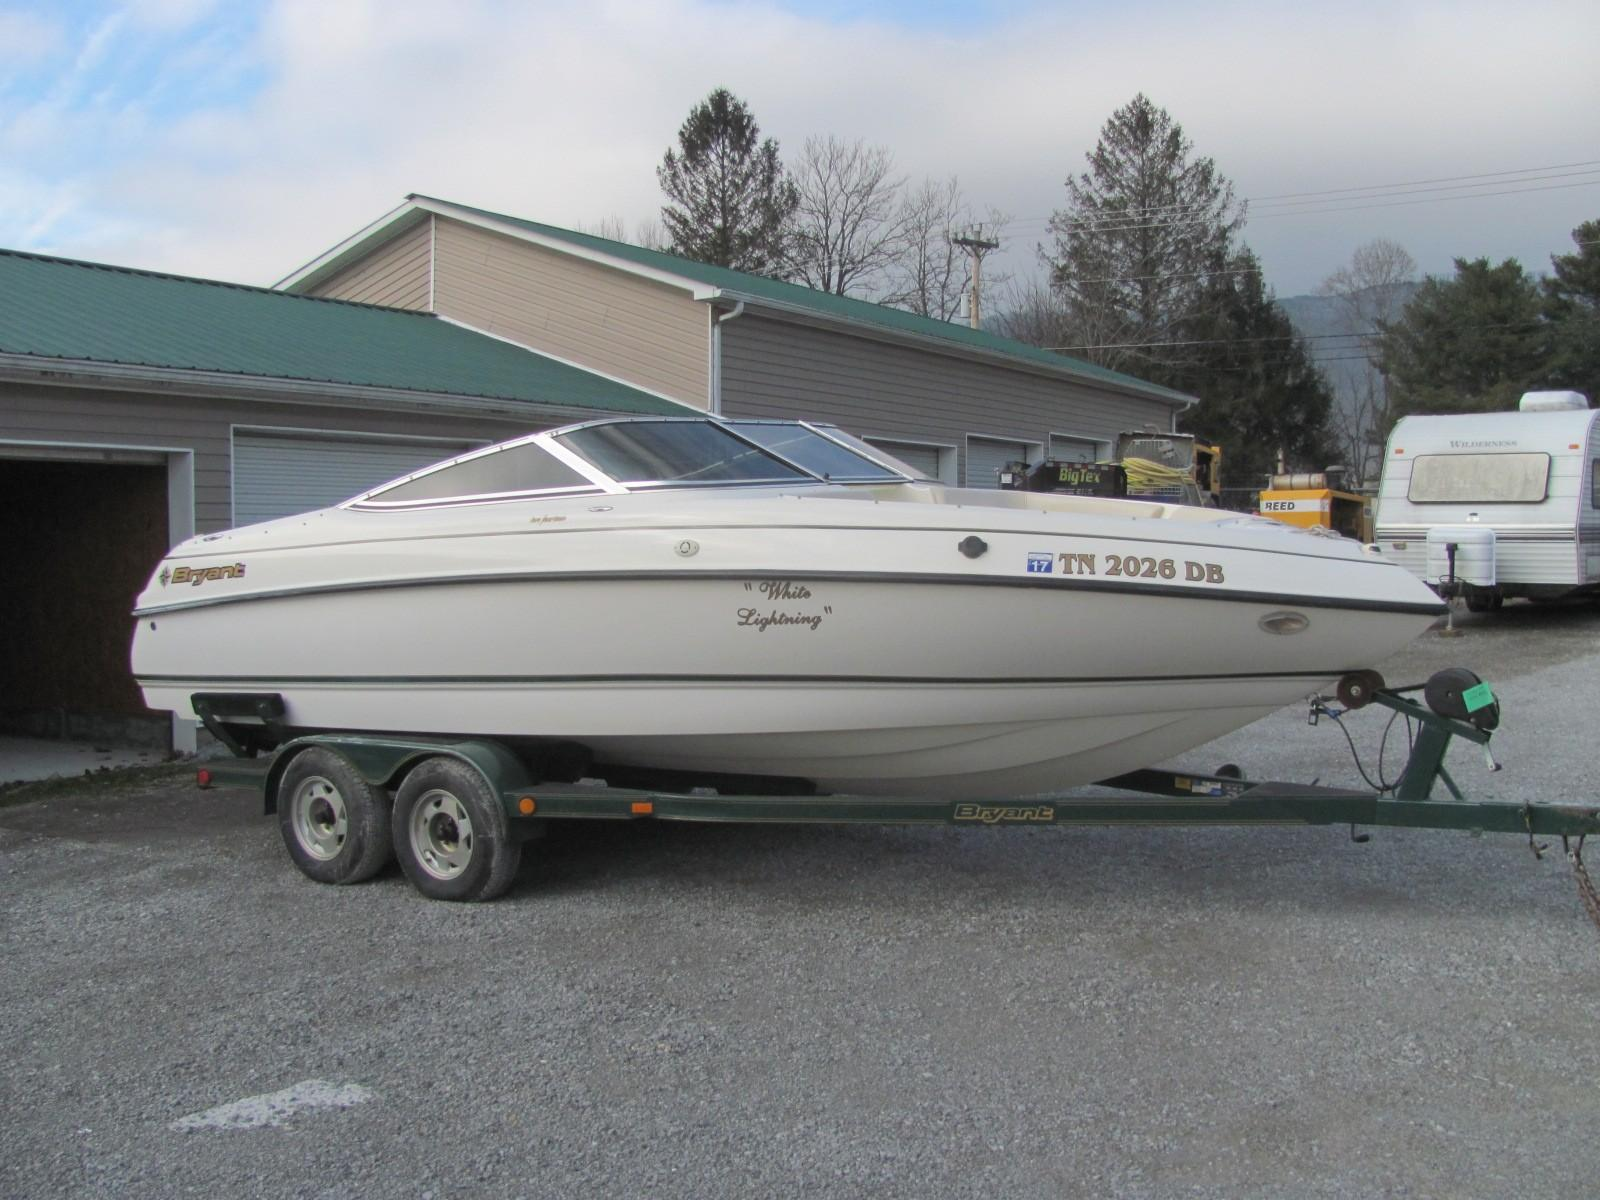 Low Rider S For Sale San Diego Ca >> Bryant boats for sale - YachtWorld